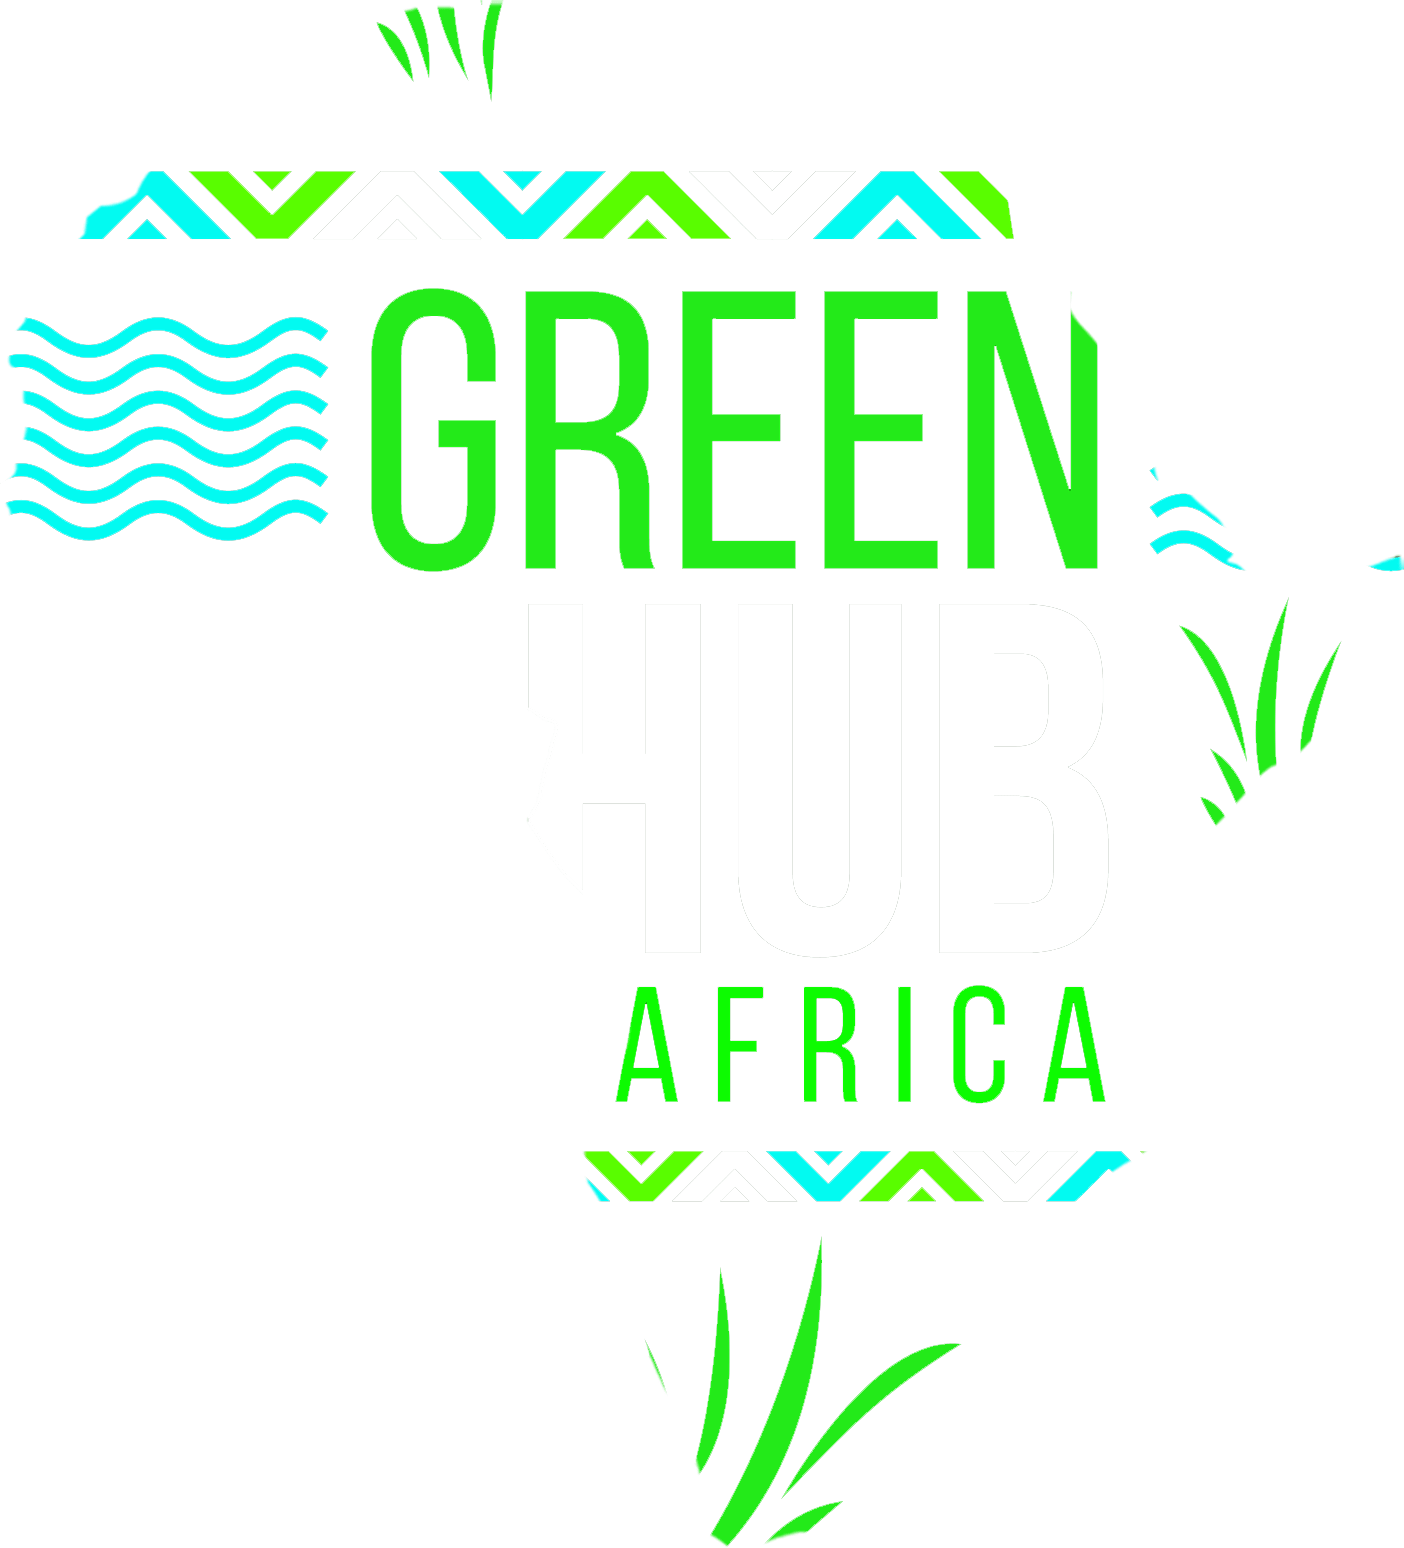 GreenHubAfrica